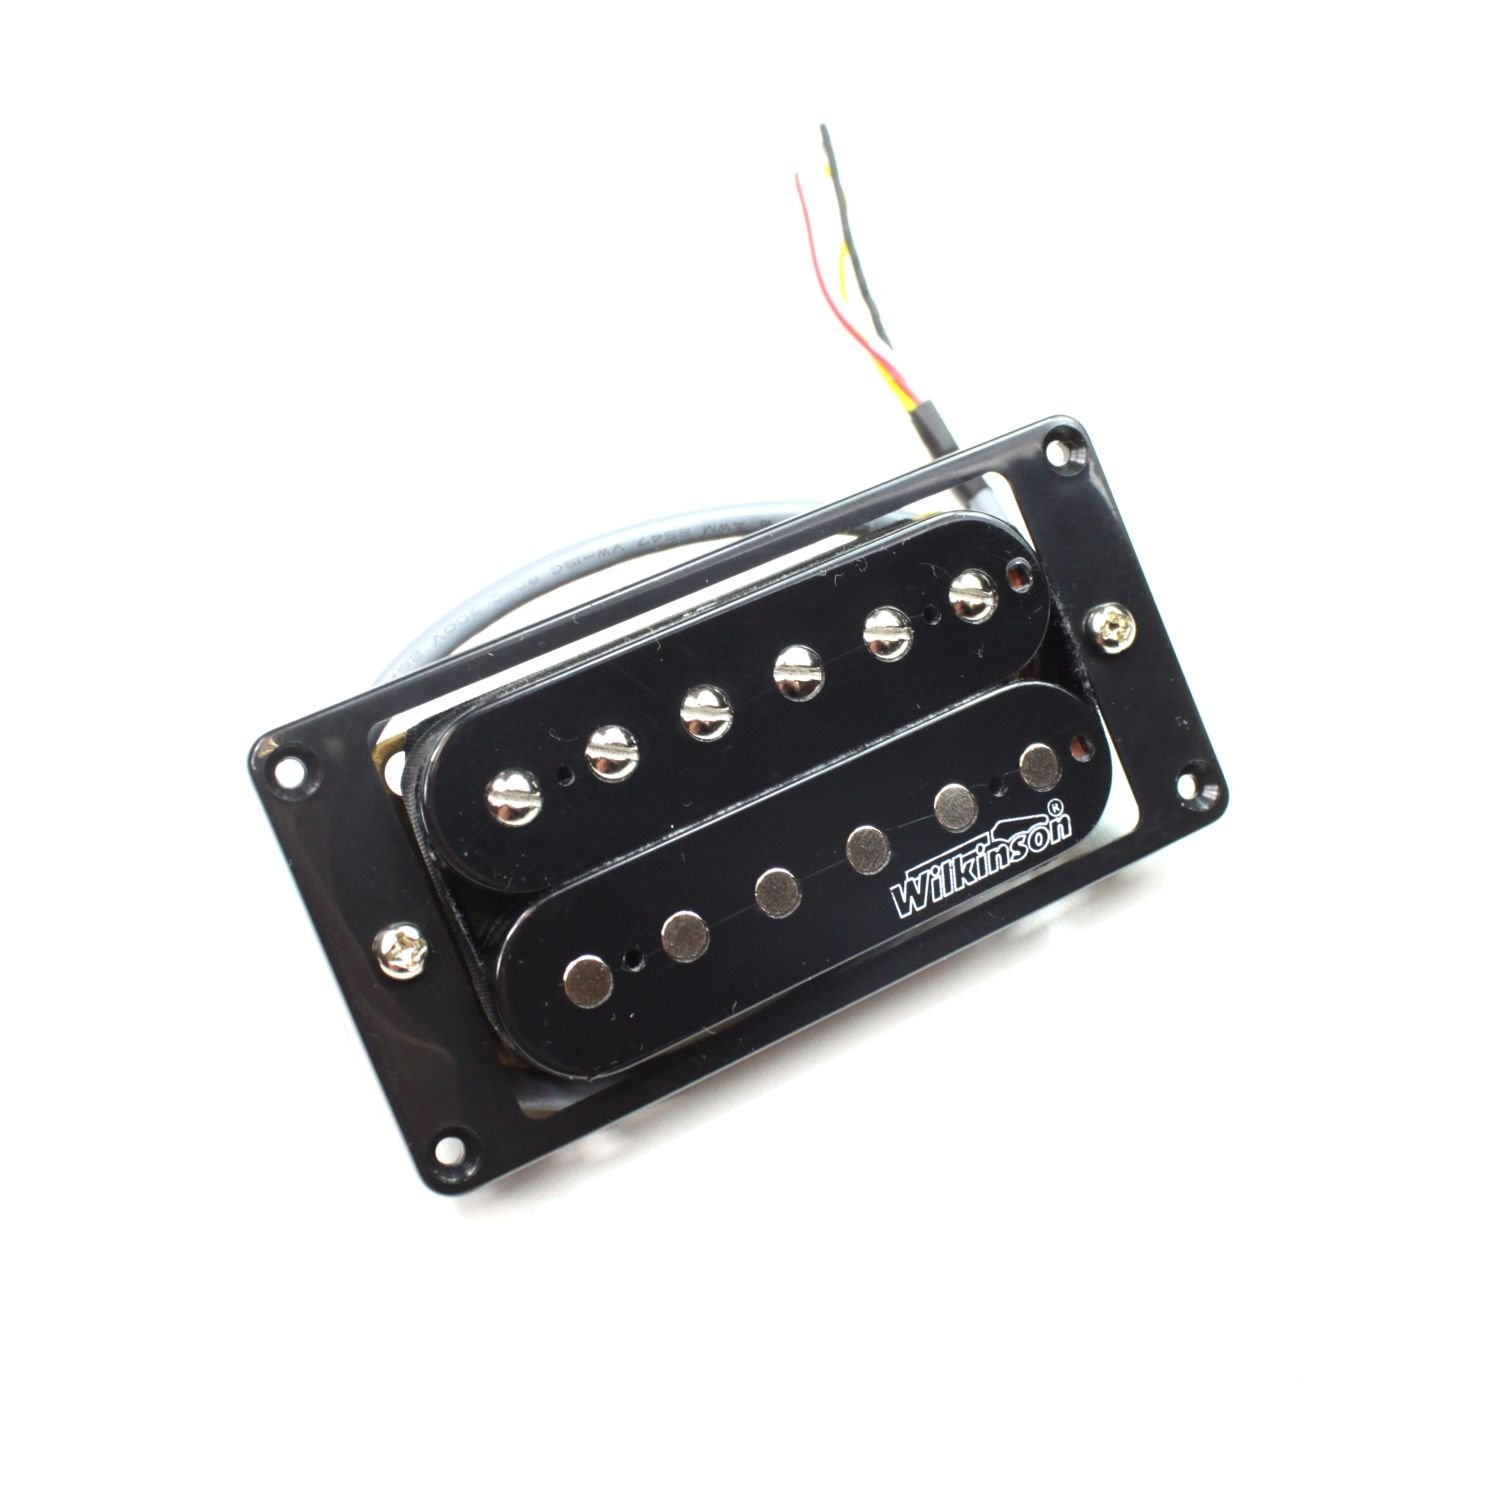 Wilkinson MWHBN Electric Guitar Neck Pickup Humbucker - Black - High Output